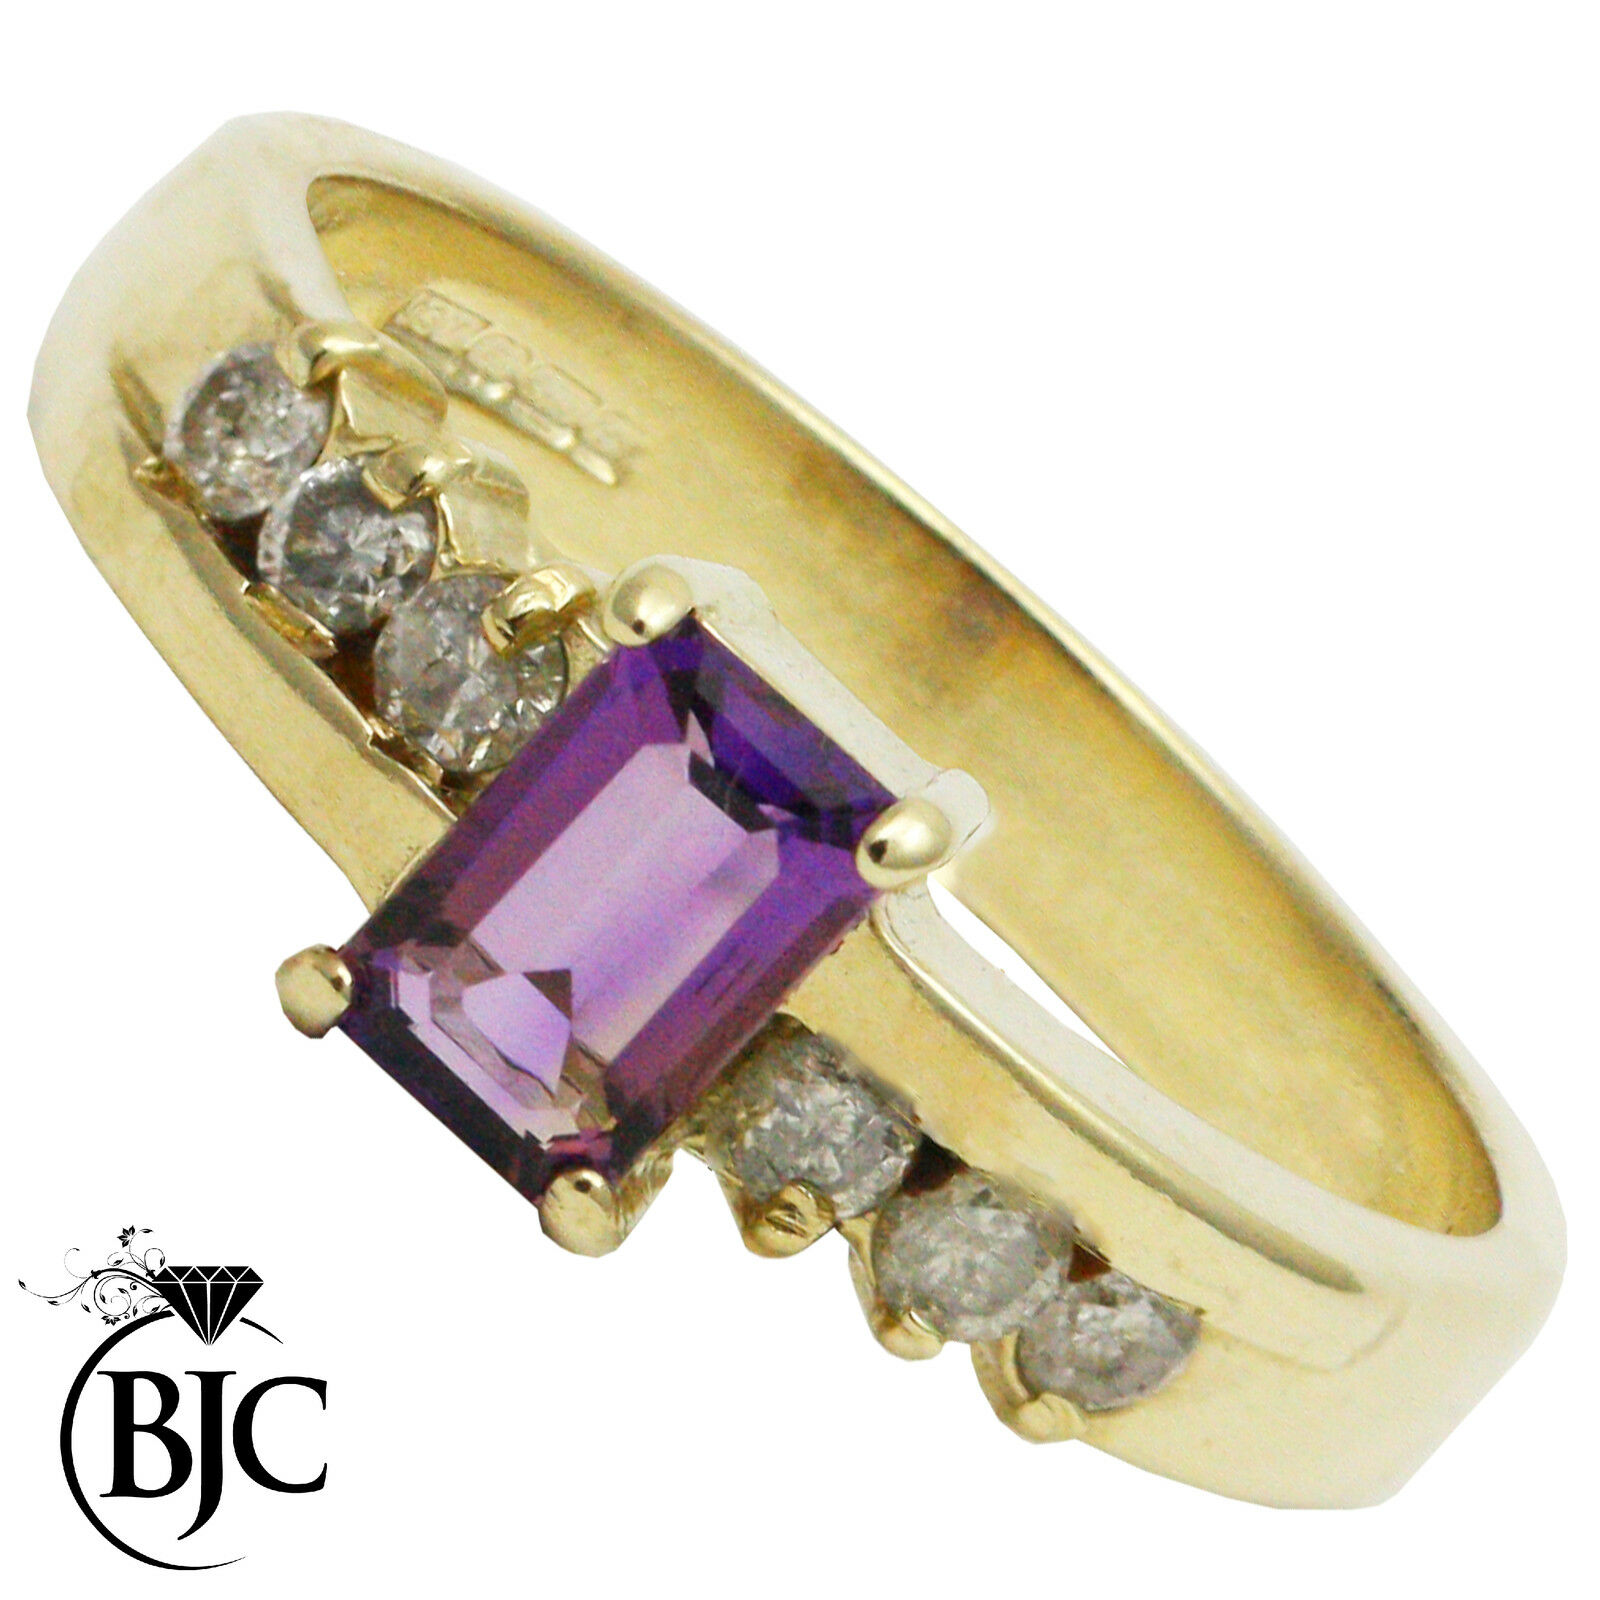 BJC 9 Ct Or yellow Améthyste & DIAMANT SOLITAIRE Accents Bague de fiançailles